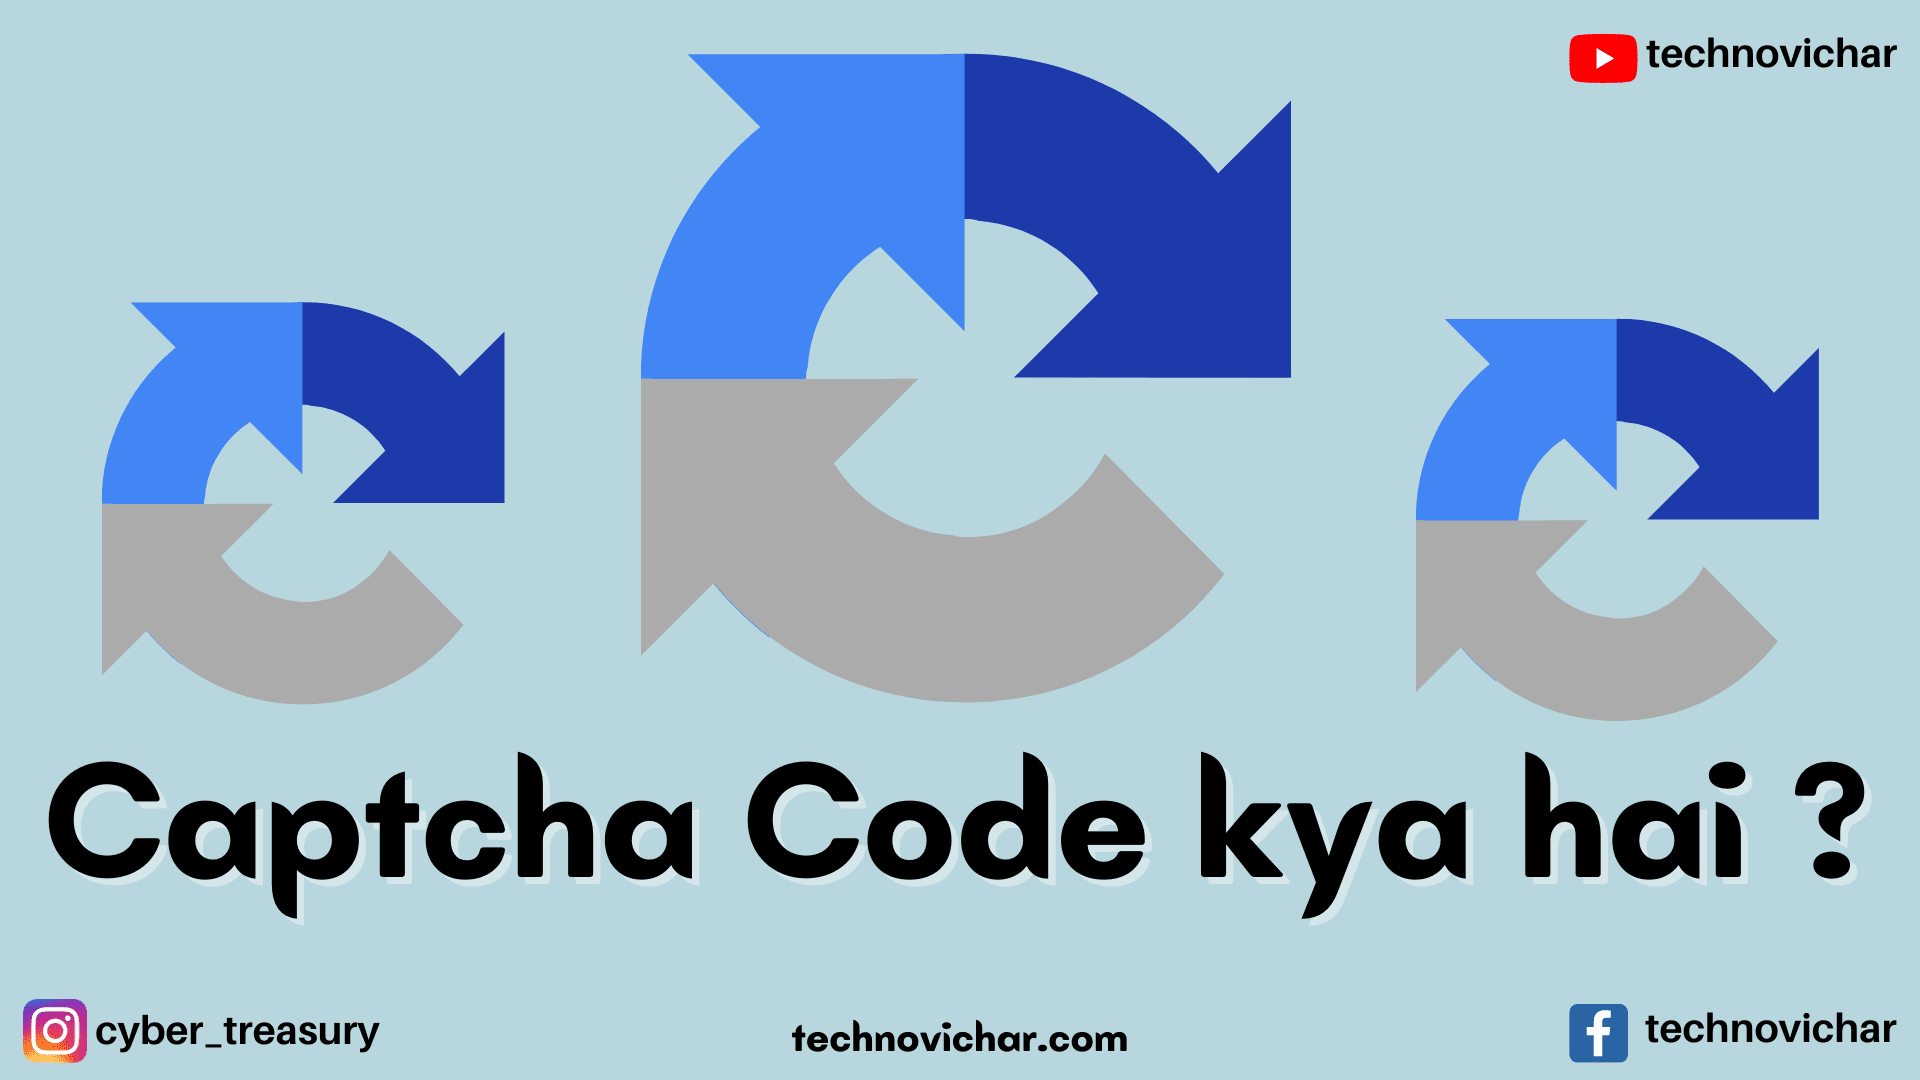 What is Captcha Code in Hindi